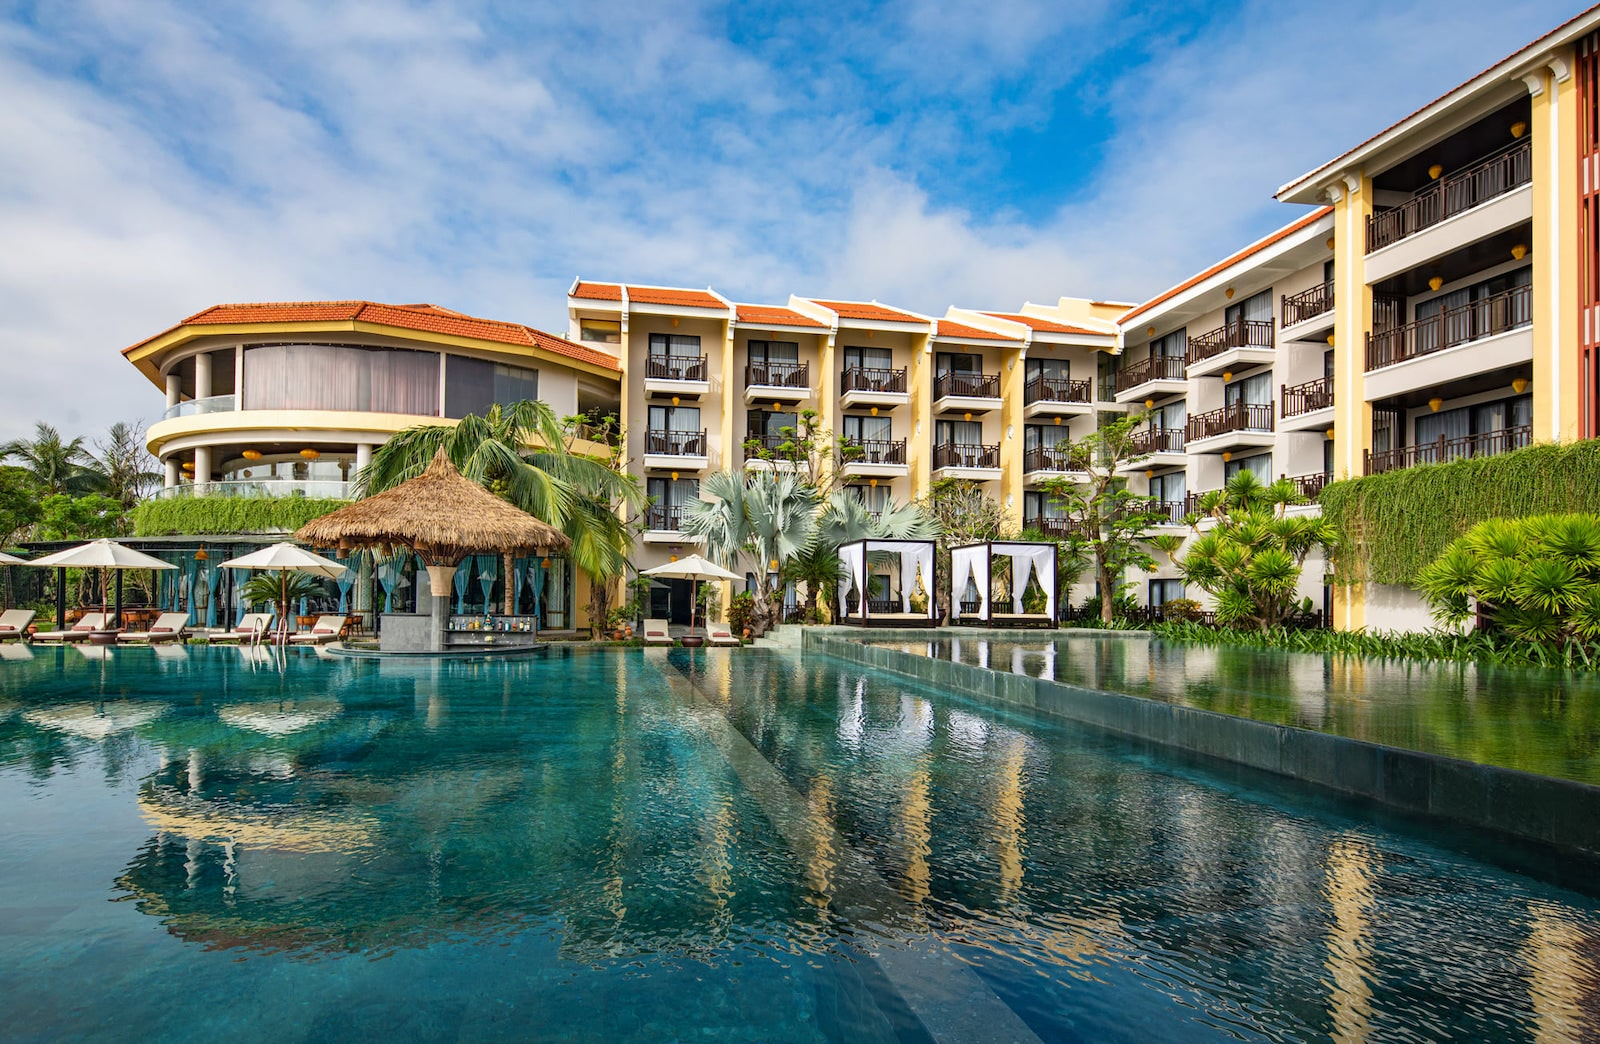 Image of the pool at the Silk Marina Resort and Spa - Mulberry Collection in Hoi An, Vietnam